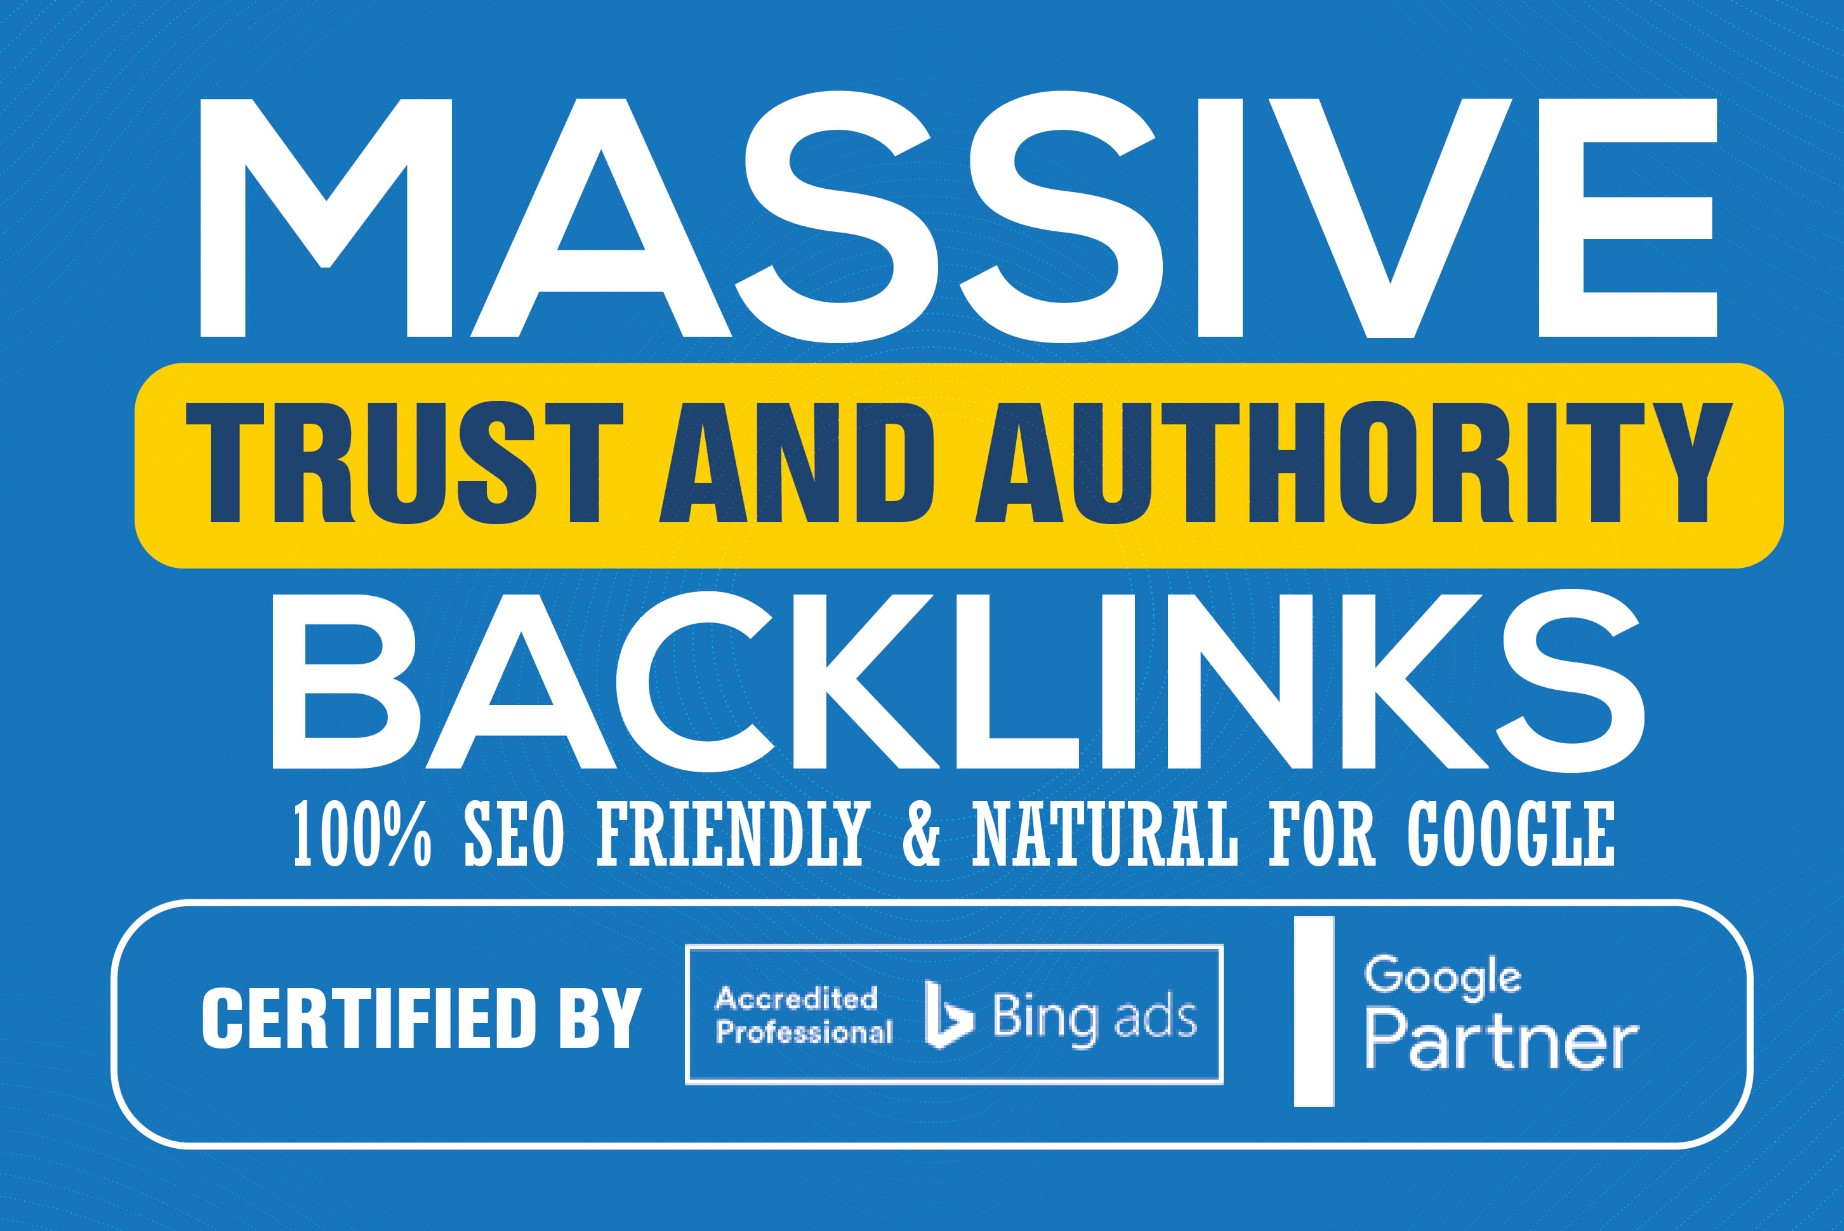 700 High Authority Backlinks to Catapult your Google SEO + Two Articles + Premium On-Site Analyzes